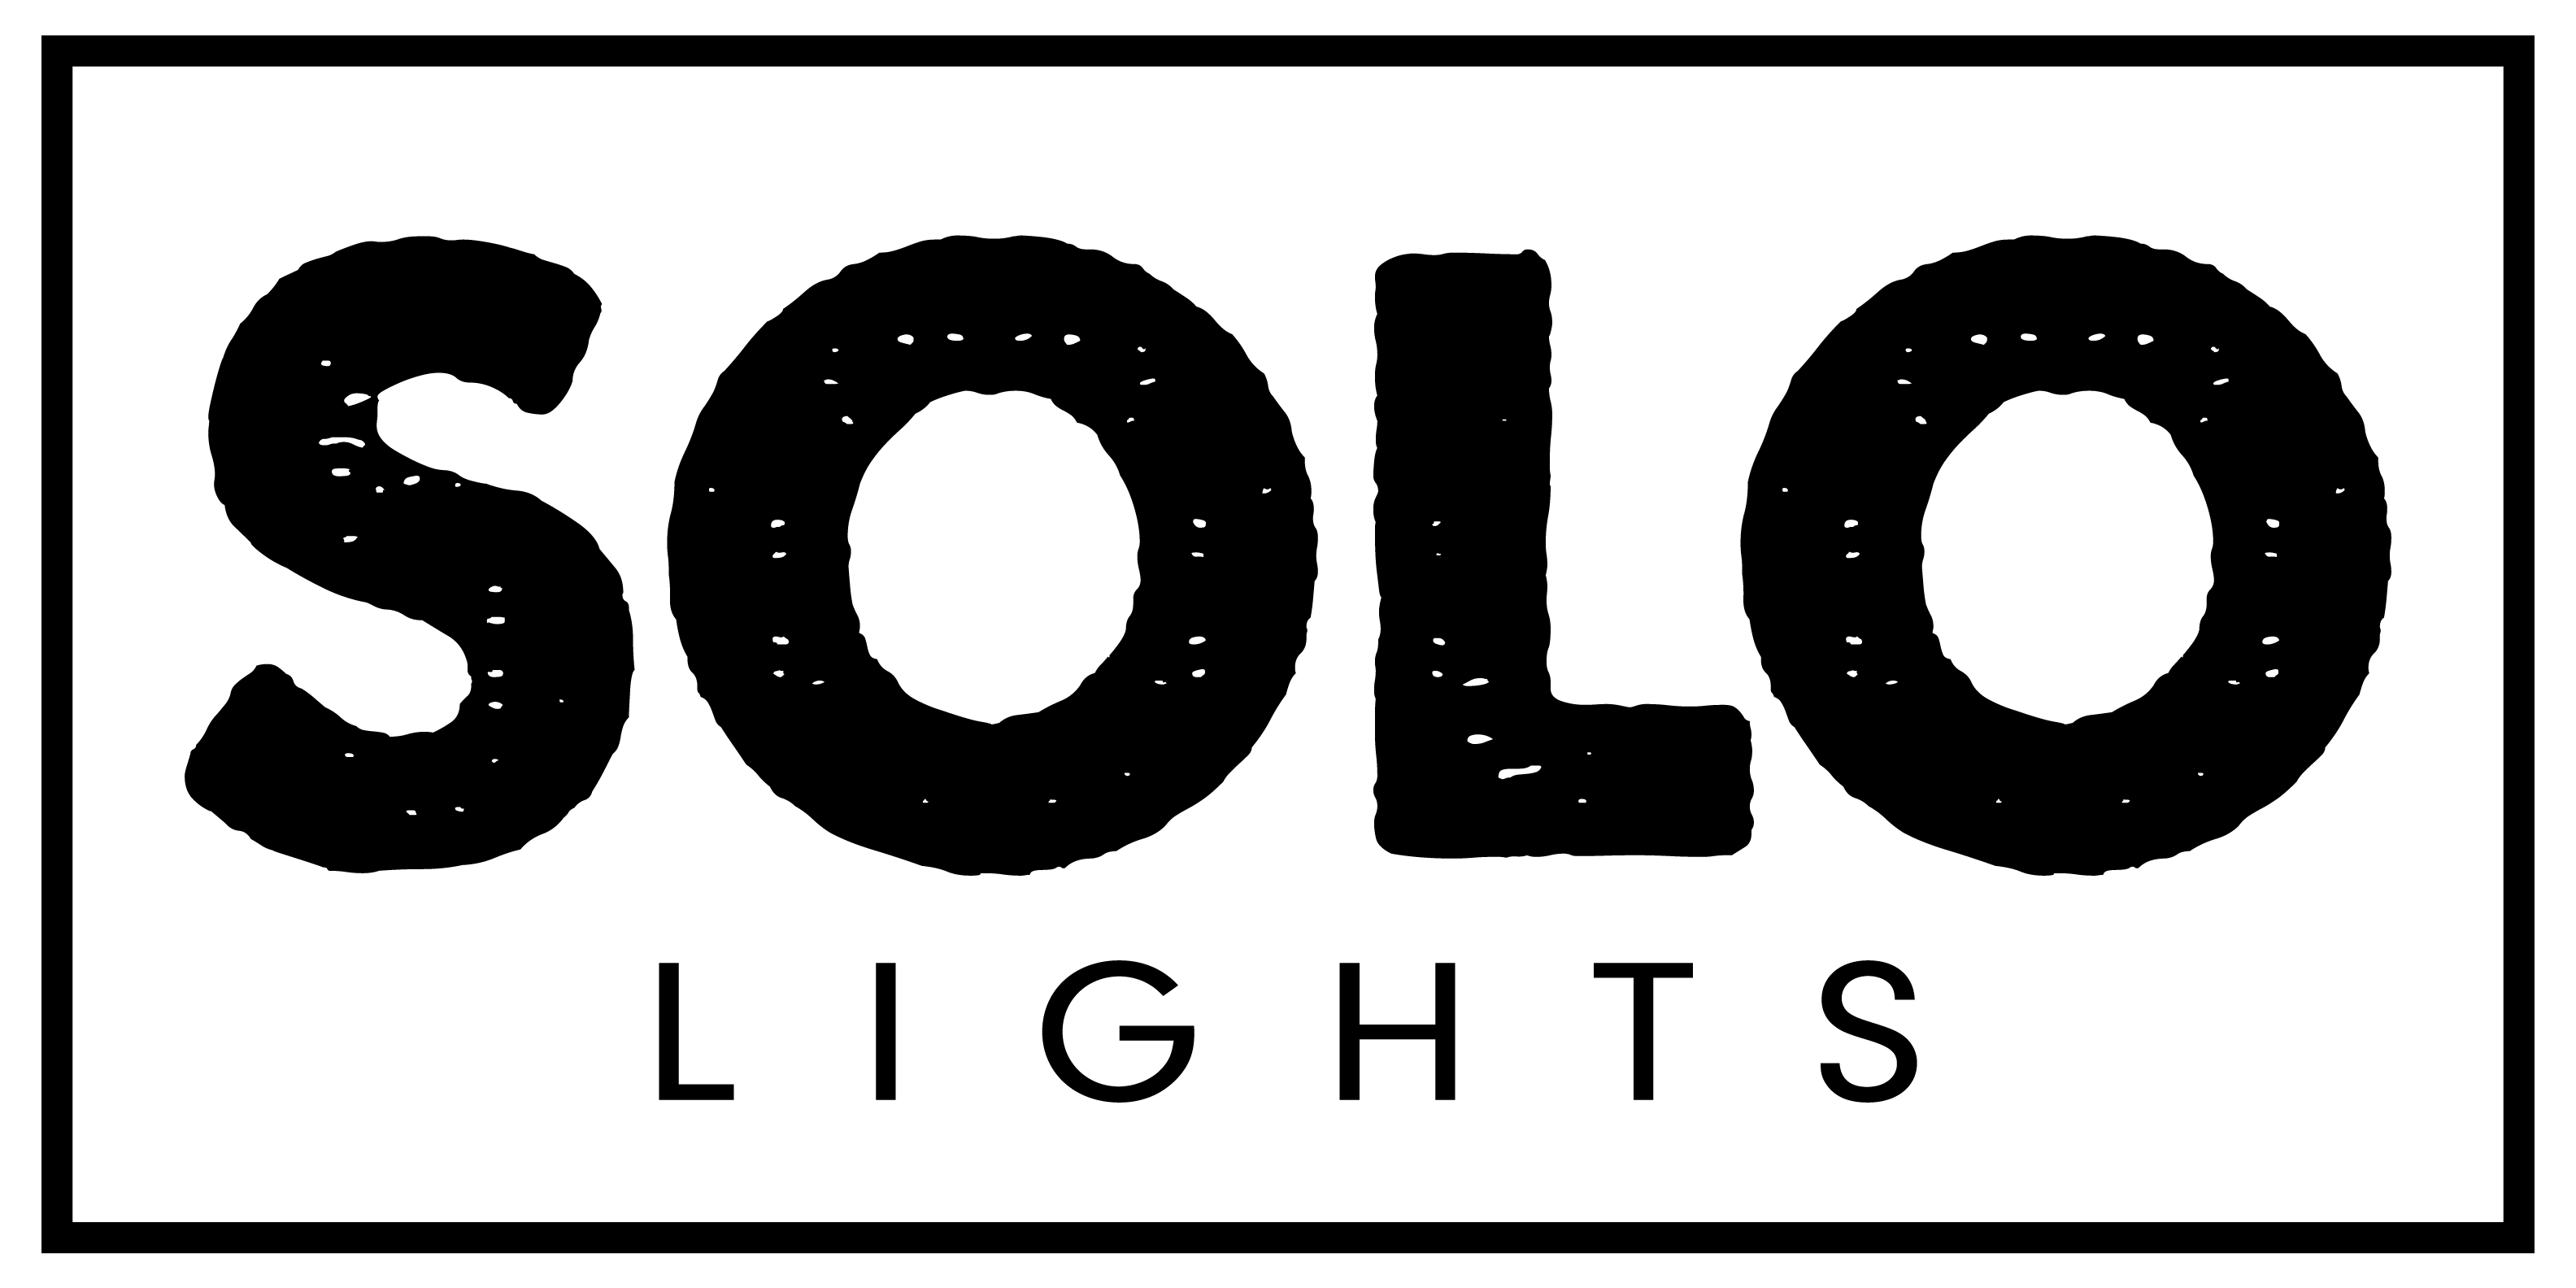 Solo Lights